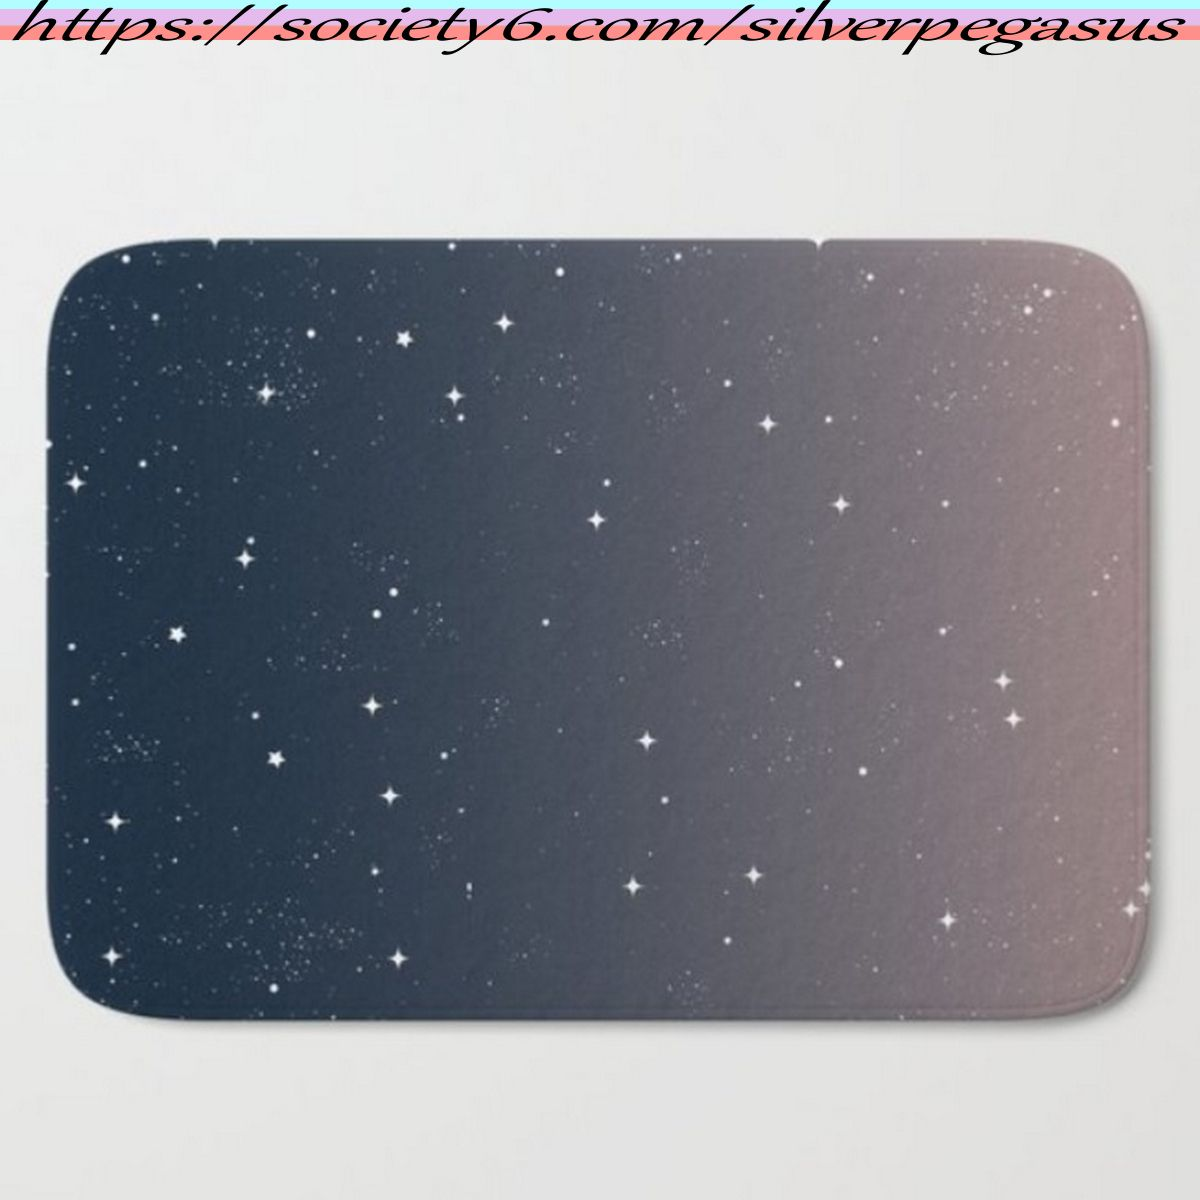 Shop for Keep On Shining - Peaceful Dusk Bath Mat by © SilverPegasus / Stunning abstract night sky in a navy blue and pink gradient with small sparkling stars / bathroom decor, home decor, interior design, dorm decor, apartment decor, starry sky, starry night, space, galaxy, stardust, ombré decor, ombré bath mat, navy decor, trendy bath mat, trendy decor / Buy bath mats / Shop for bathroom decor / #bathmat #bathroomdecor #homedecor #interiordesign #nightsky #stars #ombrédecor #trendy #society6